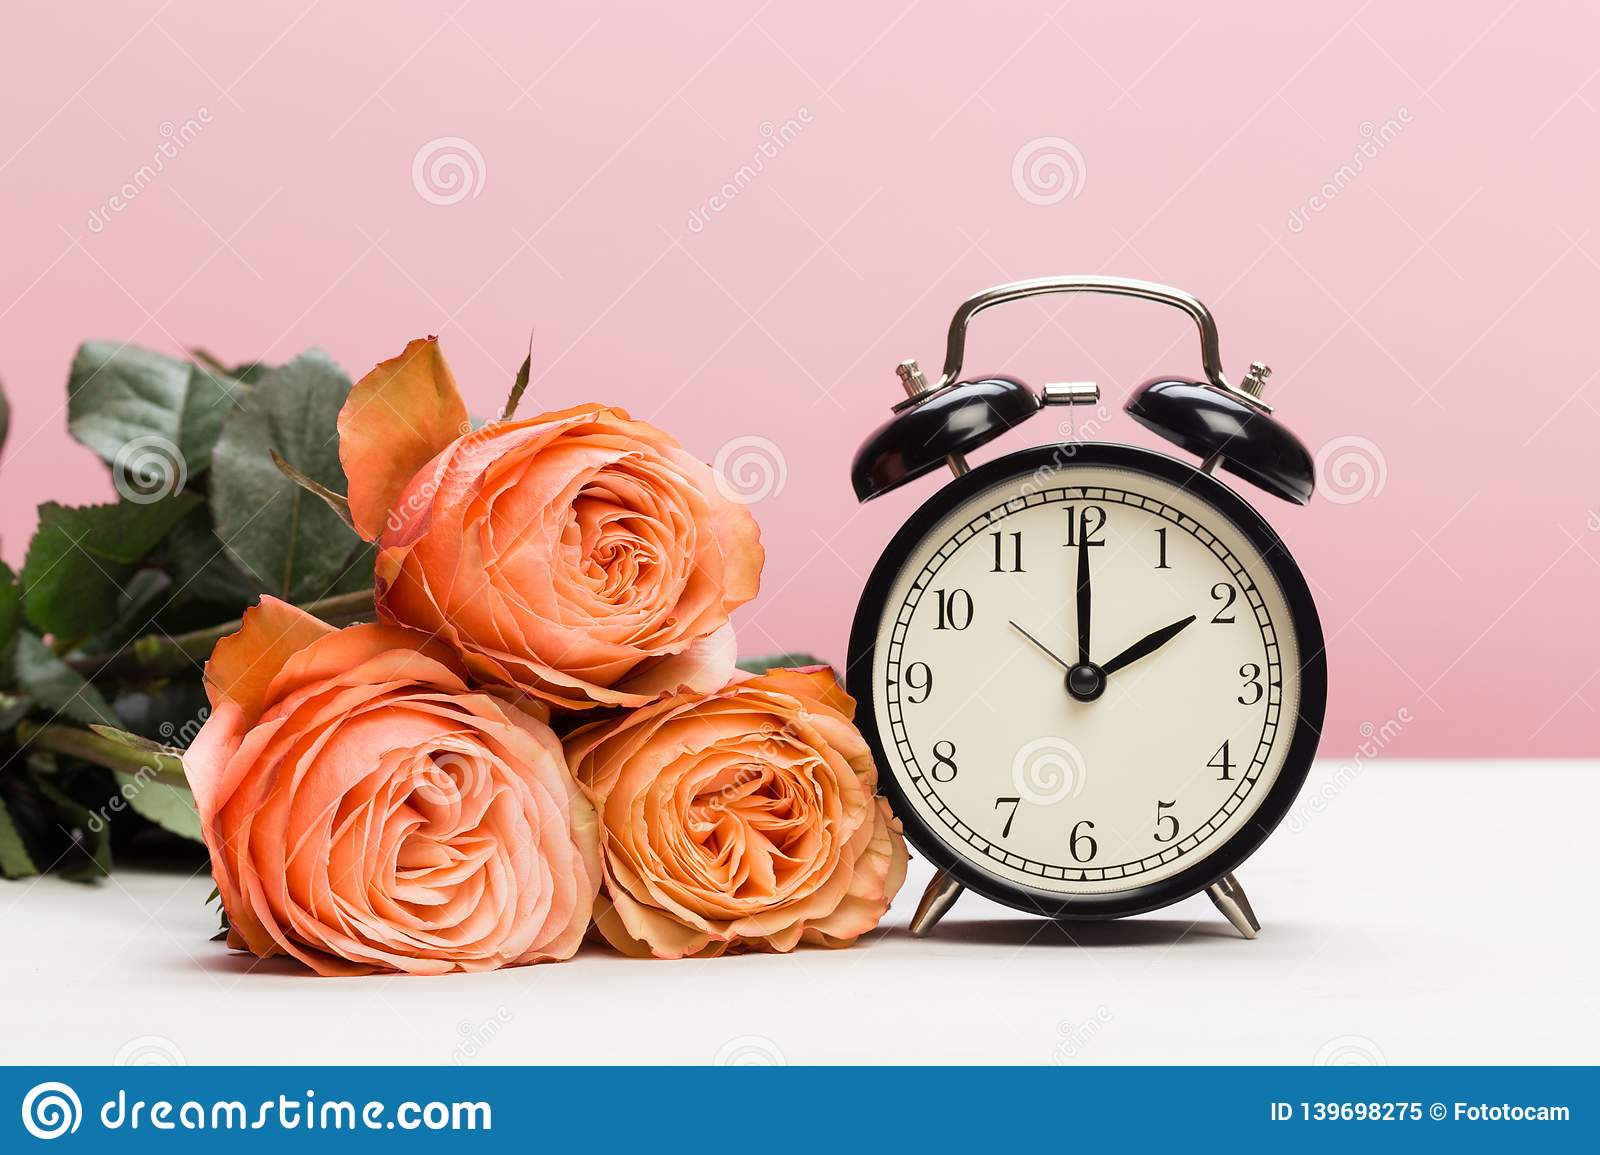 Rose roses and clock on pink background, daylight saving